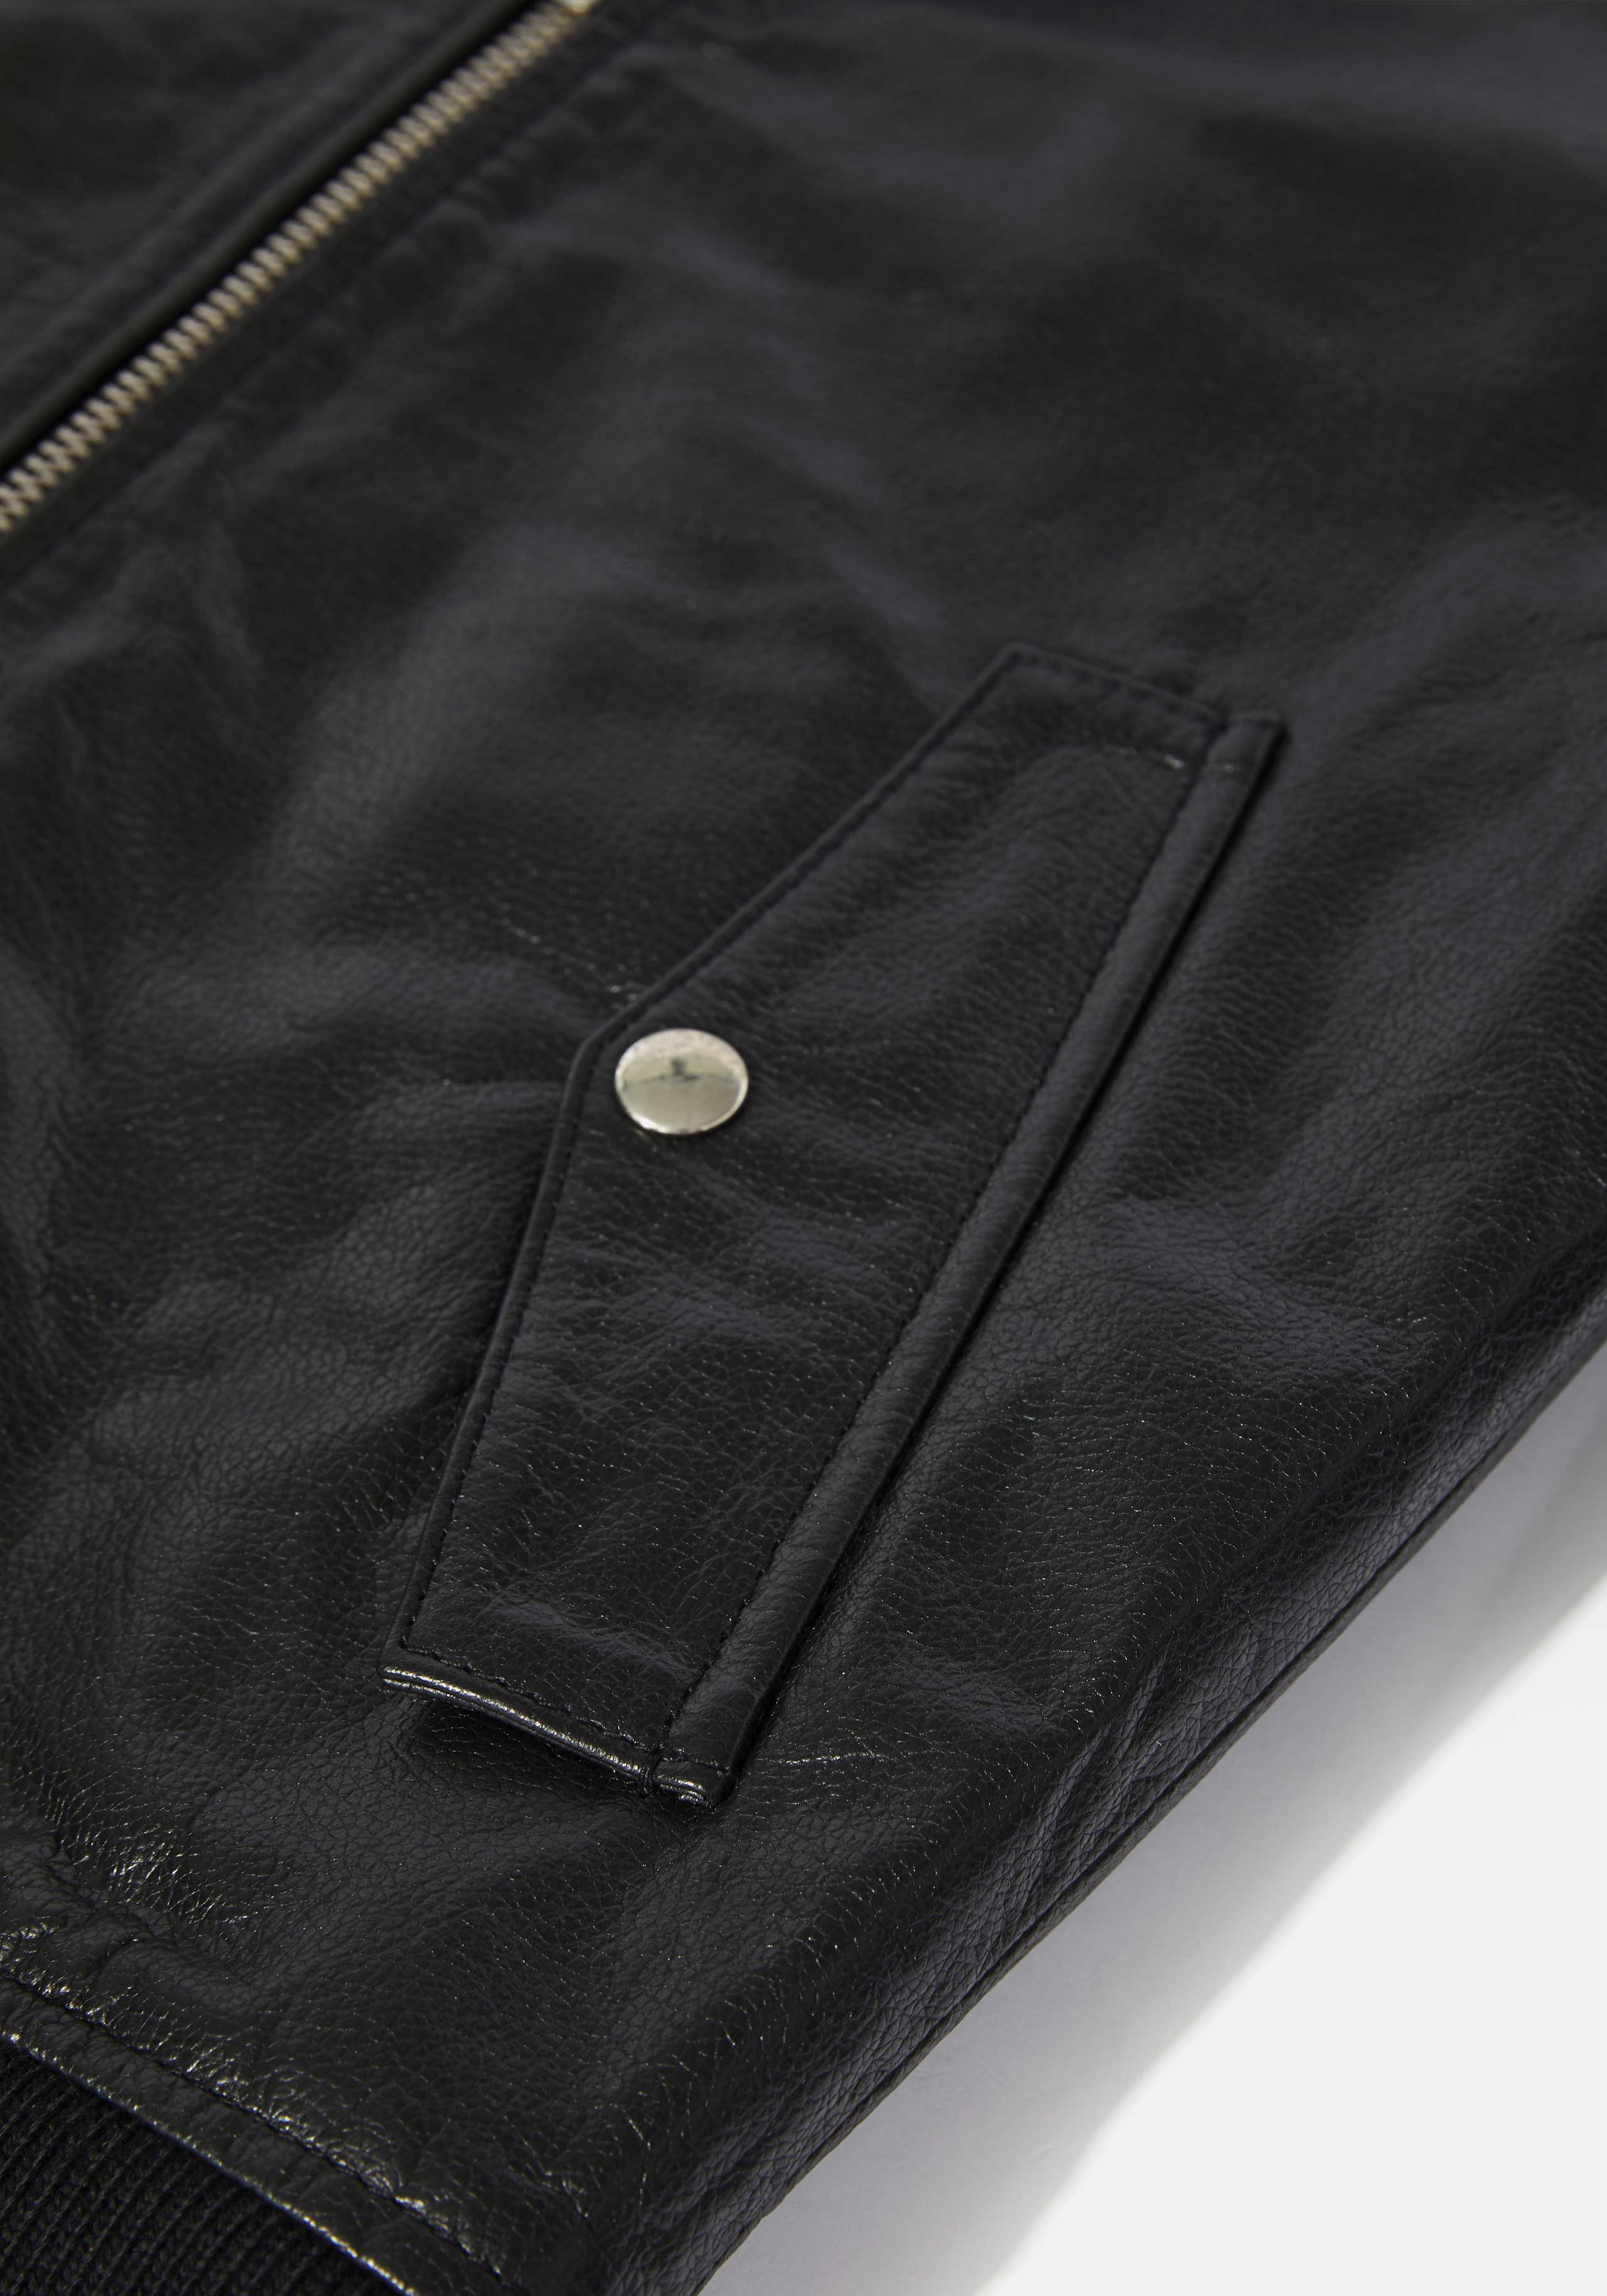 mki pdm leather bomber 5